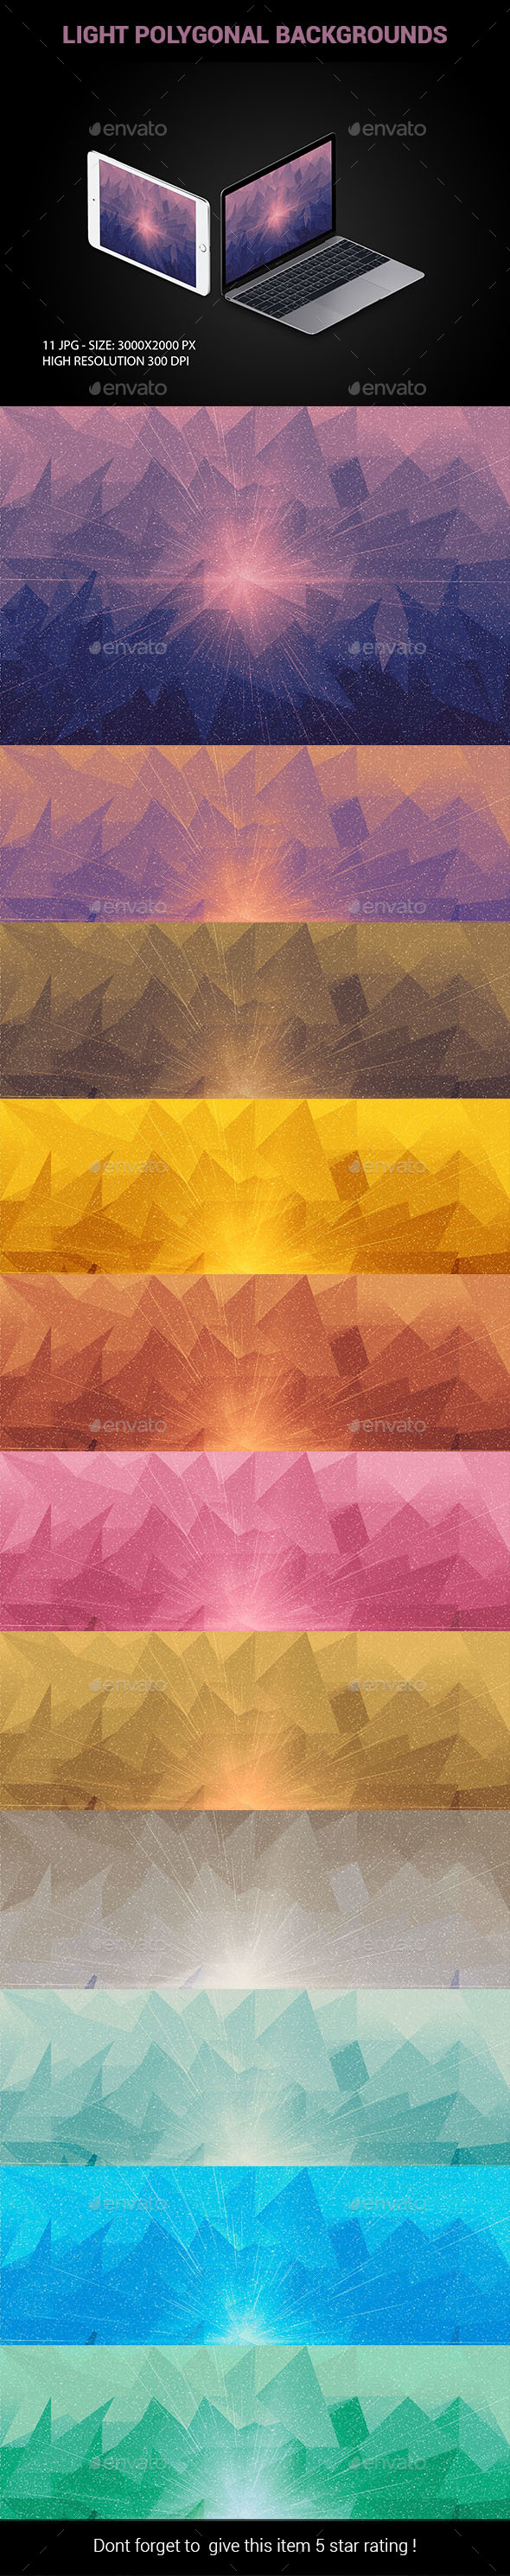 11 Light Polygonal Backgrounds - Backgrounds Graphics